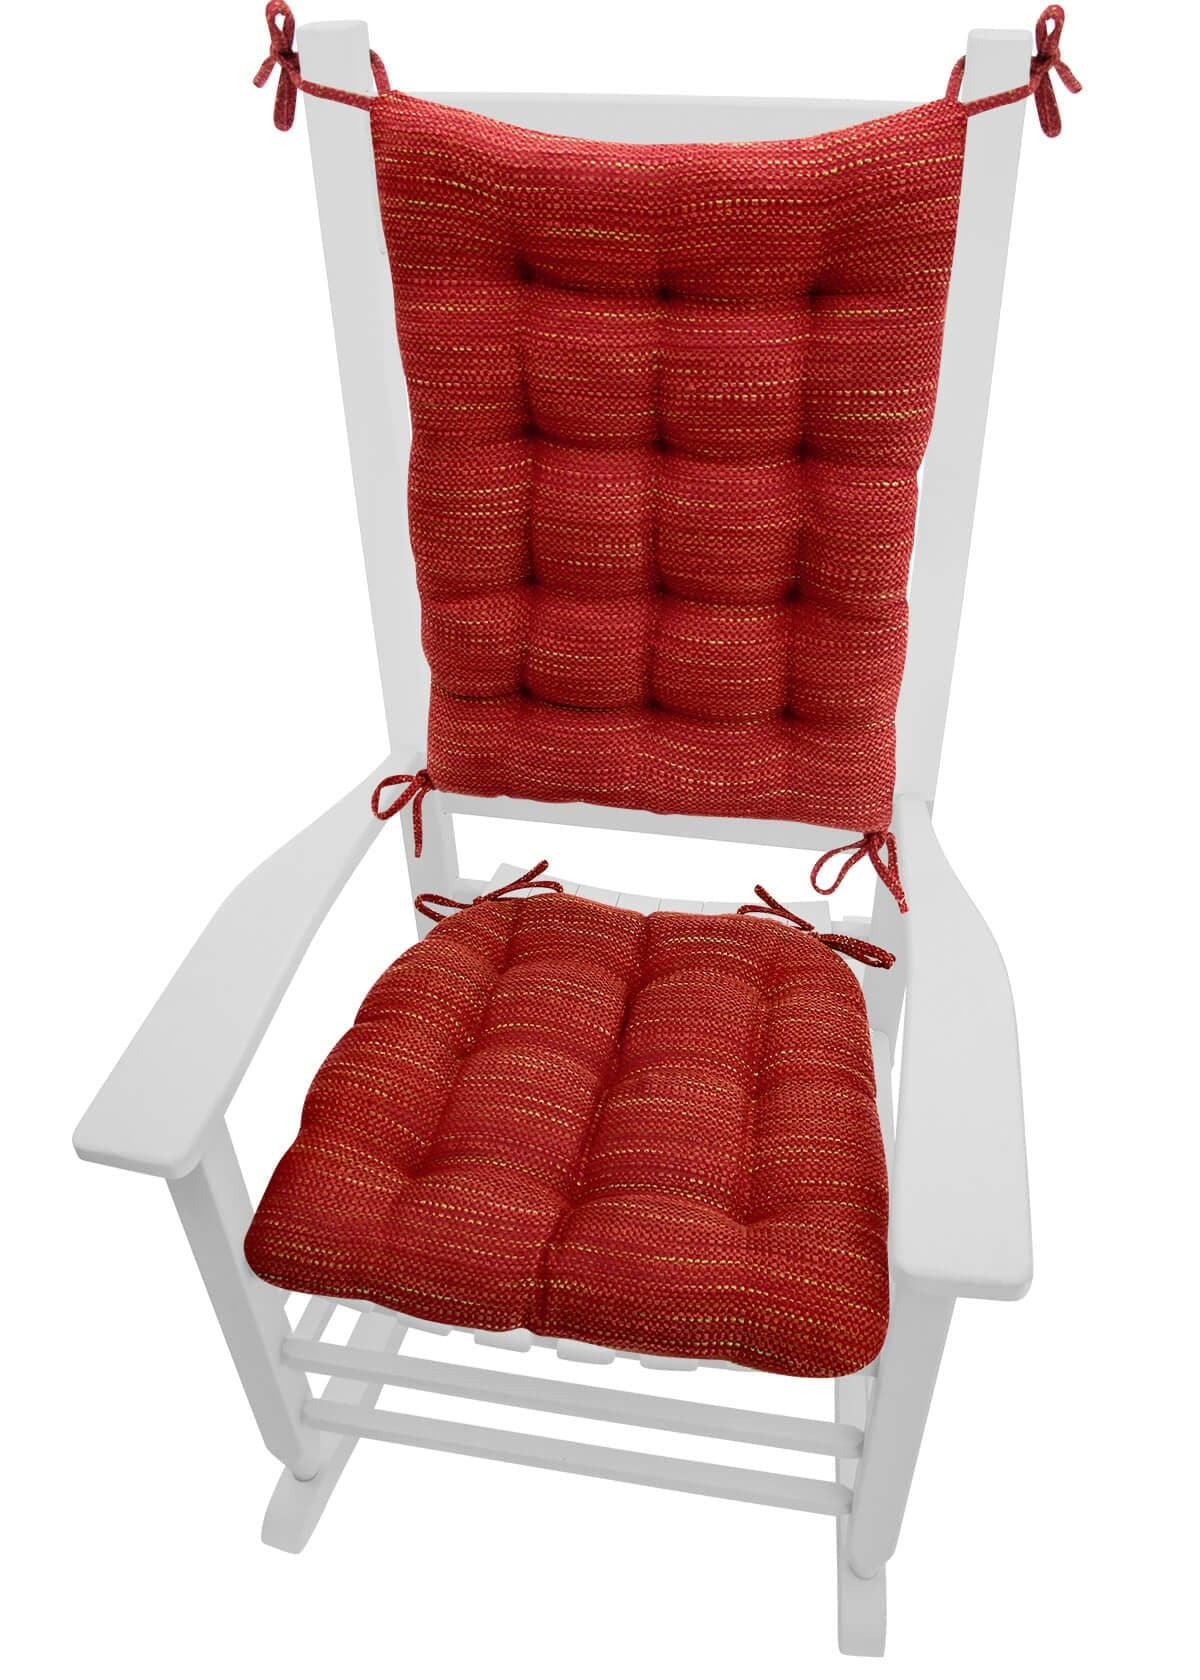 red kitchen chair pads bed bath and beyond armchair covers brisbane tweed rocking cushions latex foam